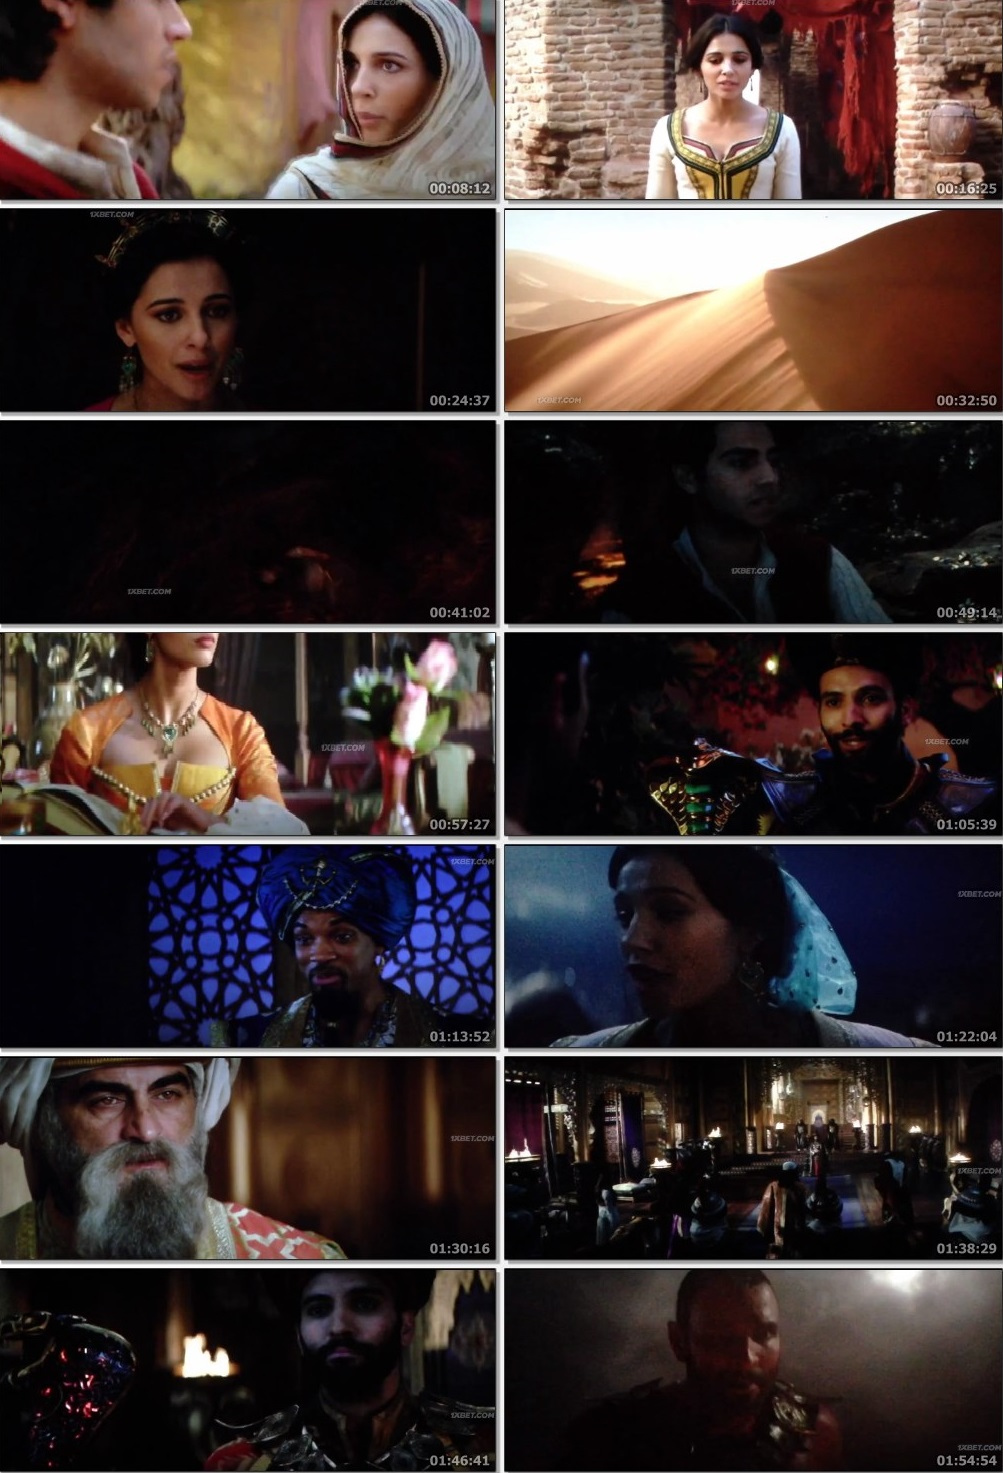 Aladdin%2B%25282019%2529%2B900MB%2B720P%2BHDTC%2BDual%2BAudio%2B%255BHindi-English%255D Aladdin 2019 300MB Full Movie Hindi Dubbed Dual Audio 480P HQ